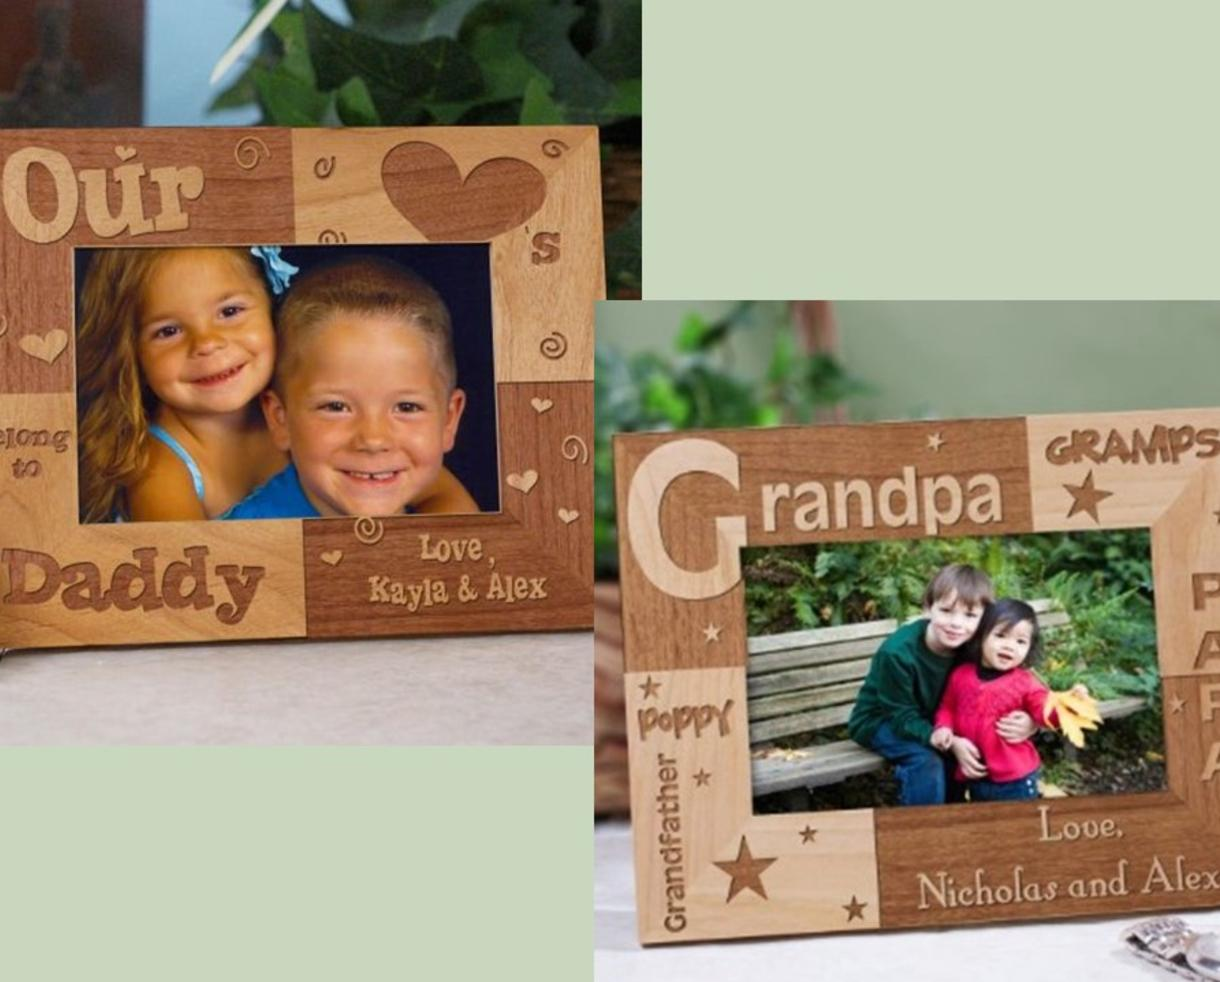 14 for personalized wood fathers day frames several designs for your favorite dad grandpa 25 value 44 off